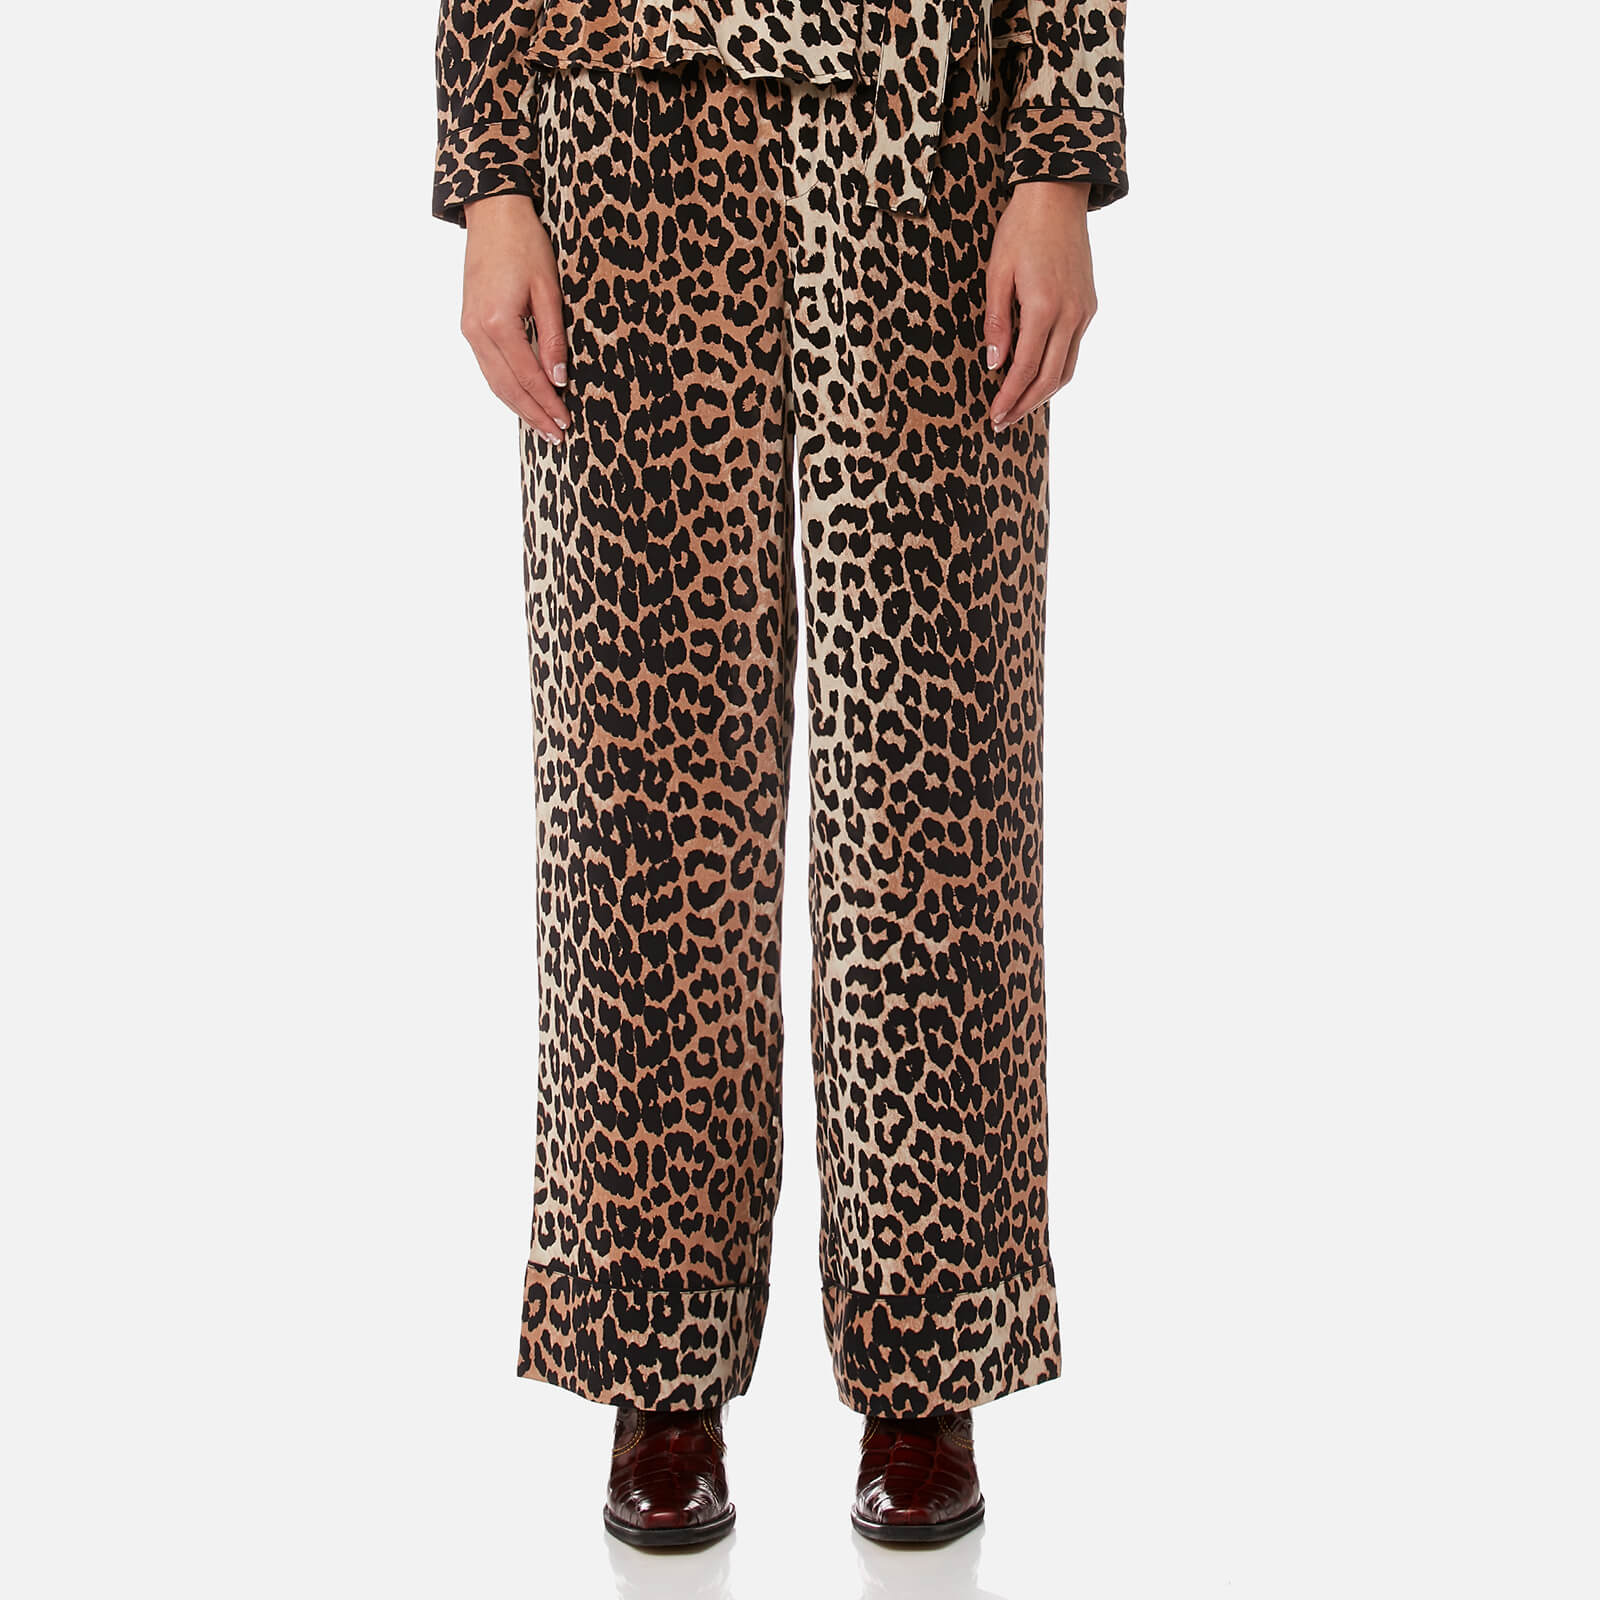 26c41483259 Ganni Women s Fayette Silk Trousers - Leopard - Free UK Delivery over £50